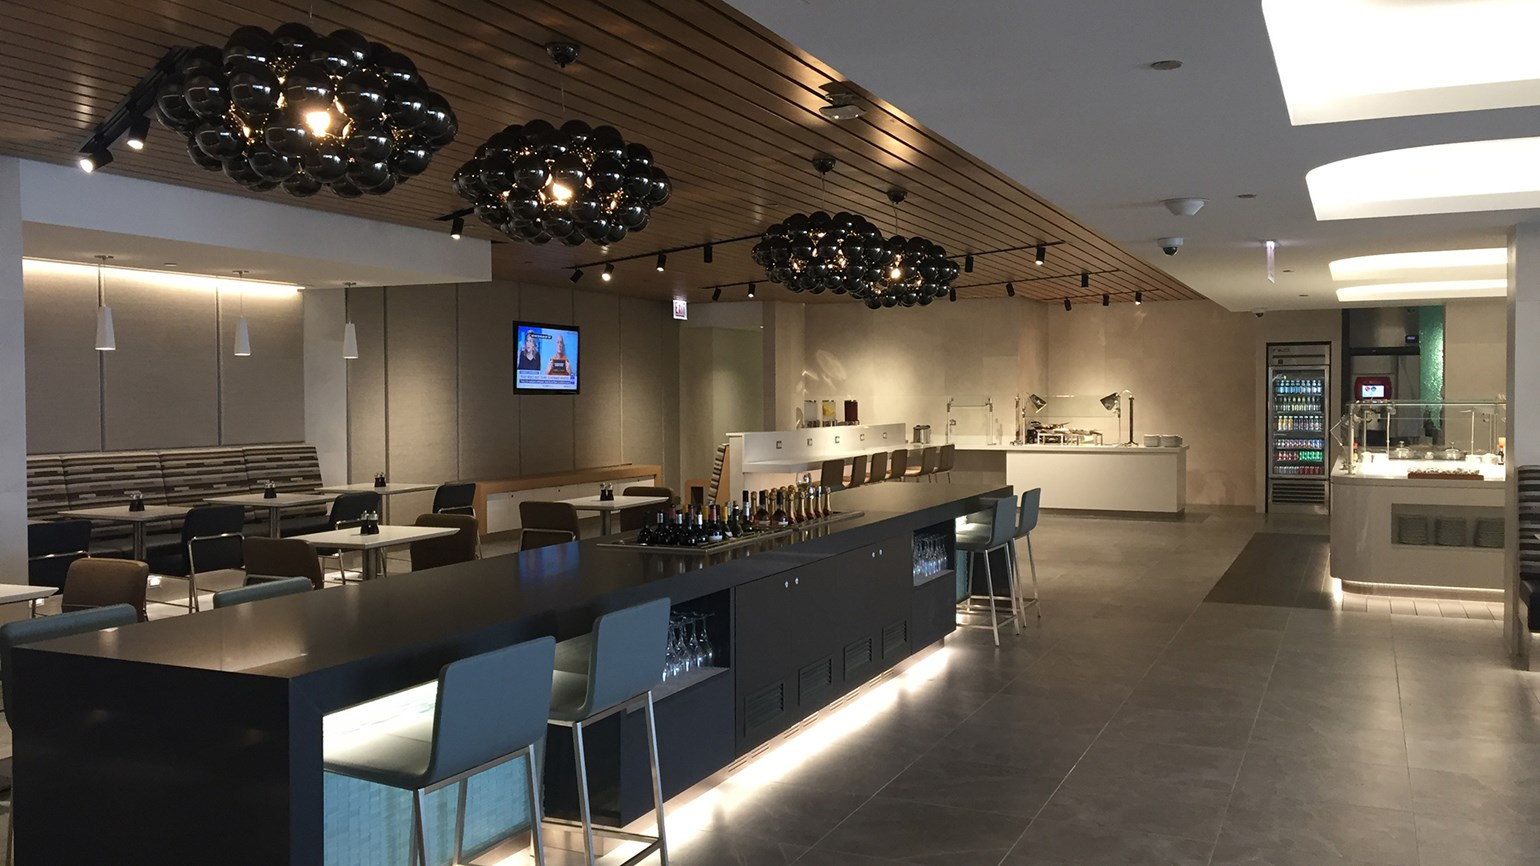 American opens Flagship Lounge at O'Hare